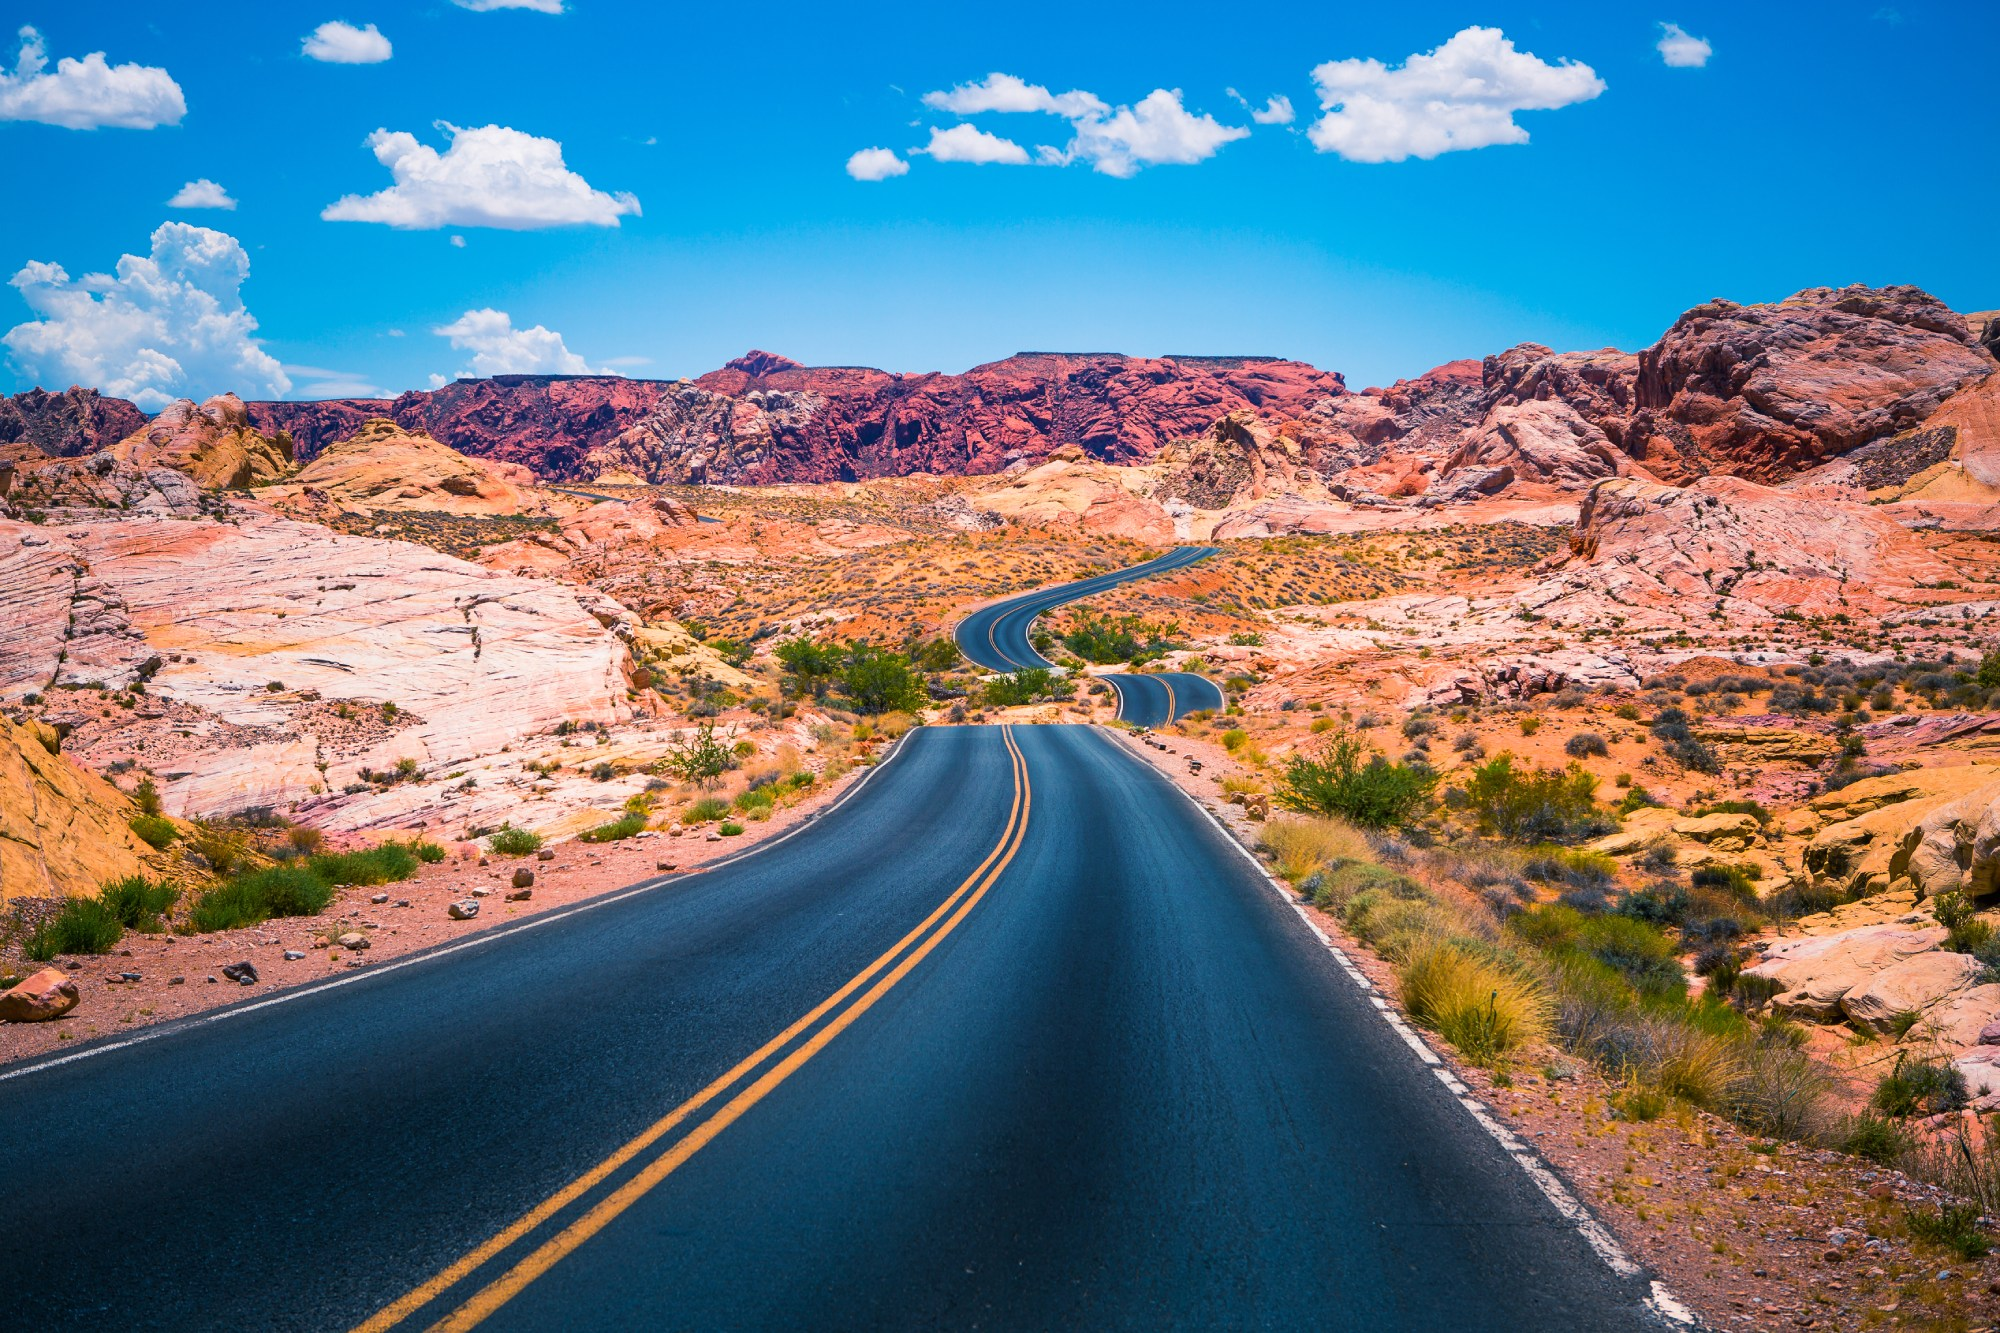 nevada travel and photography guide